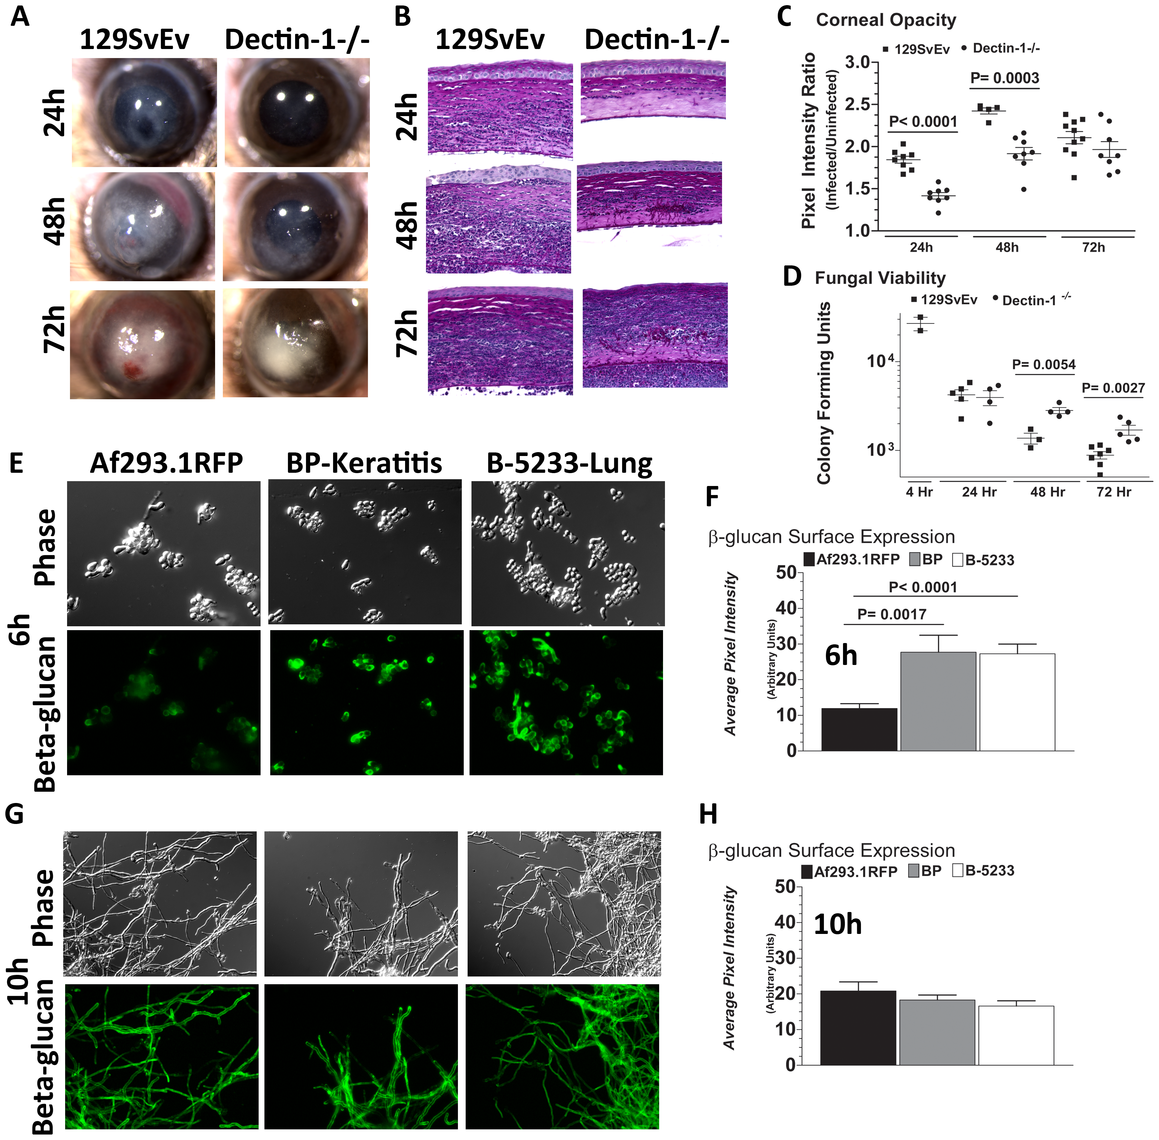 Role of Dectin-1 in keratitis caused by a clinical isolate of <i>A. fumigatus</i>.